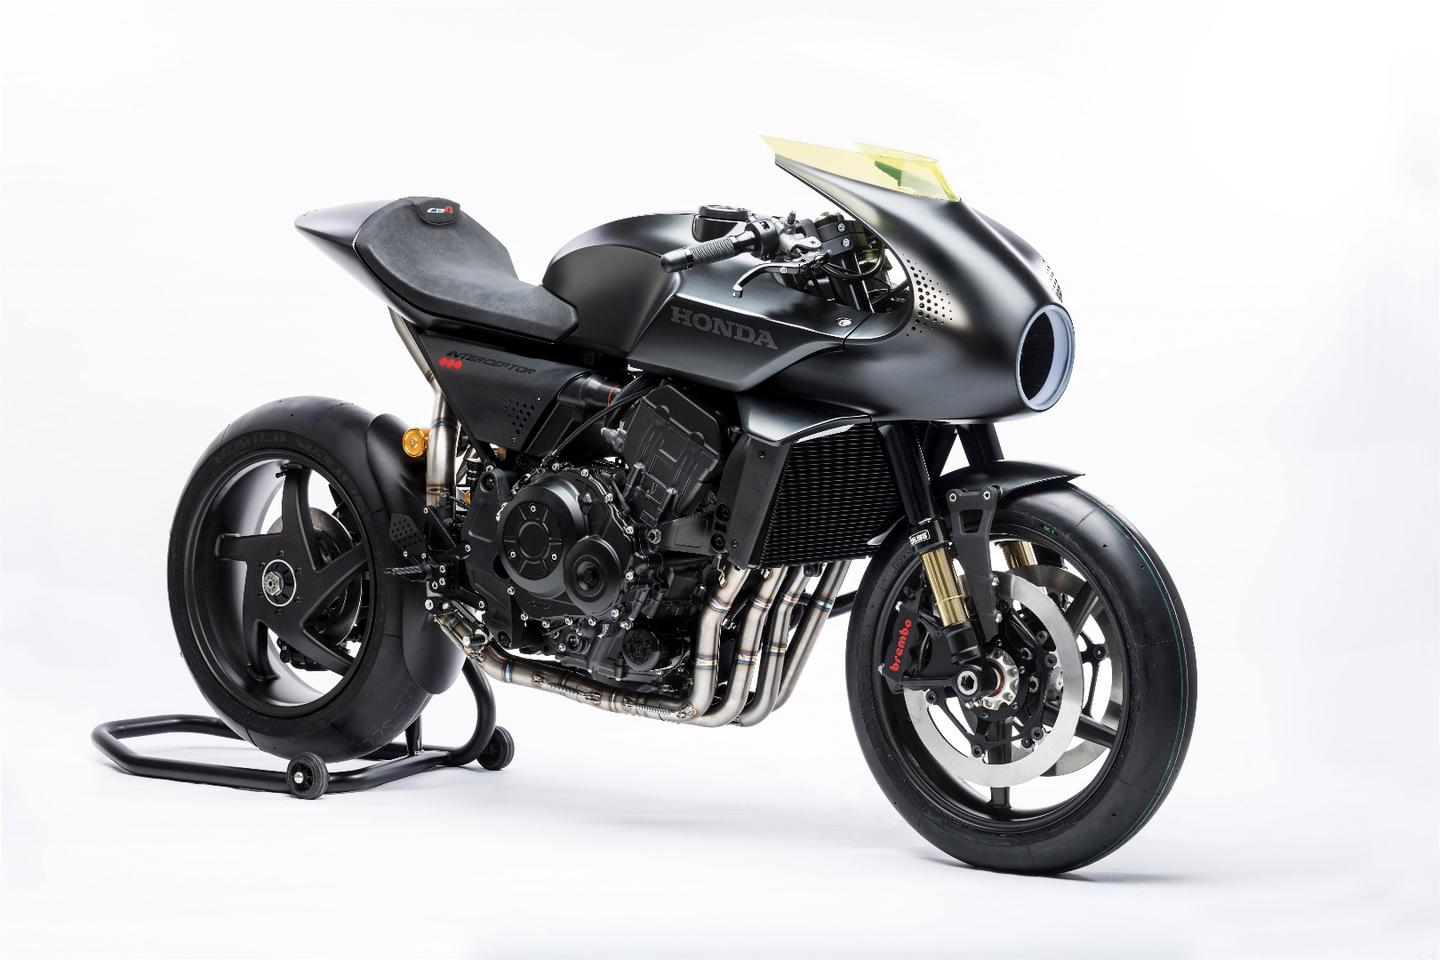 Honda's CB4 Interceptor concept catapults the retro cafe racer style into the future